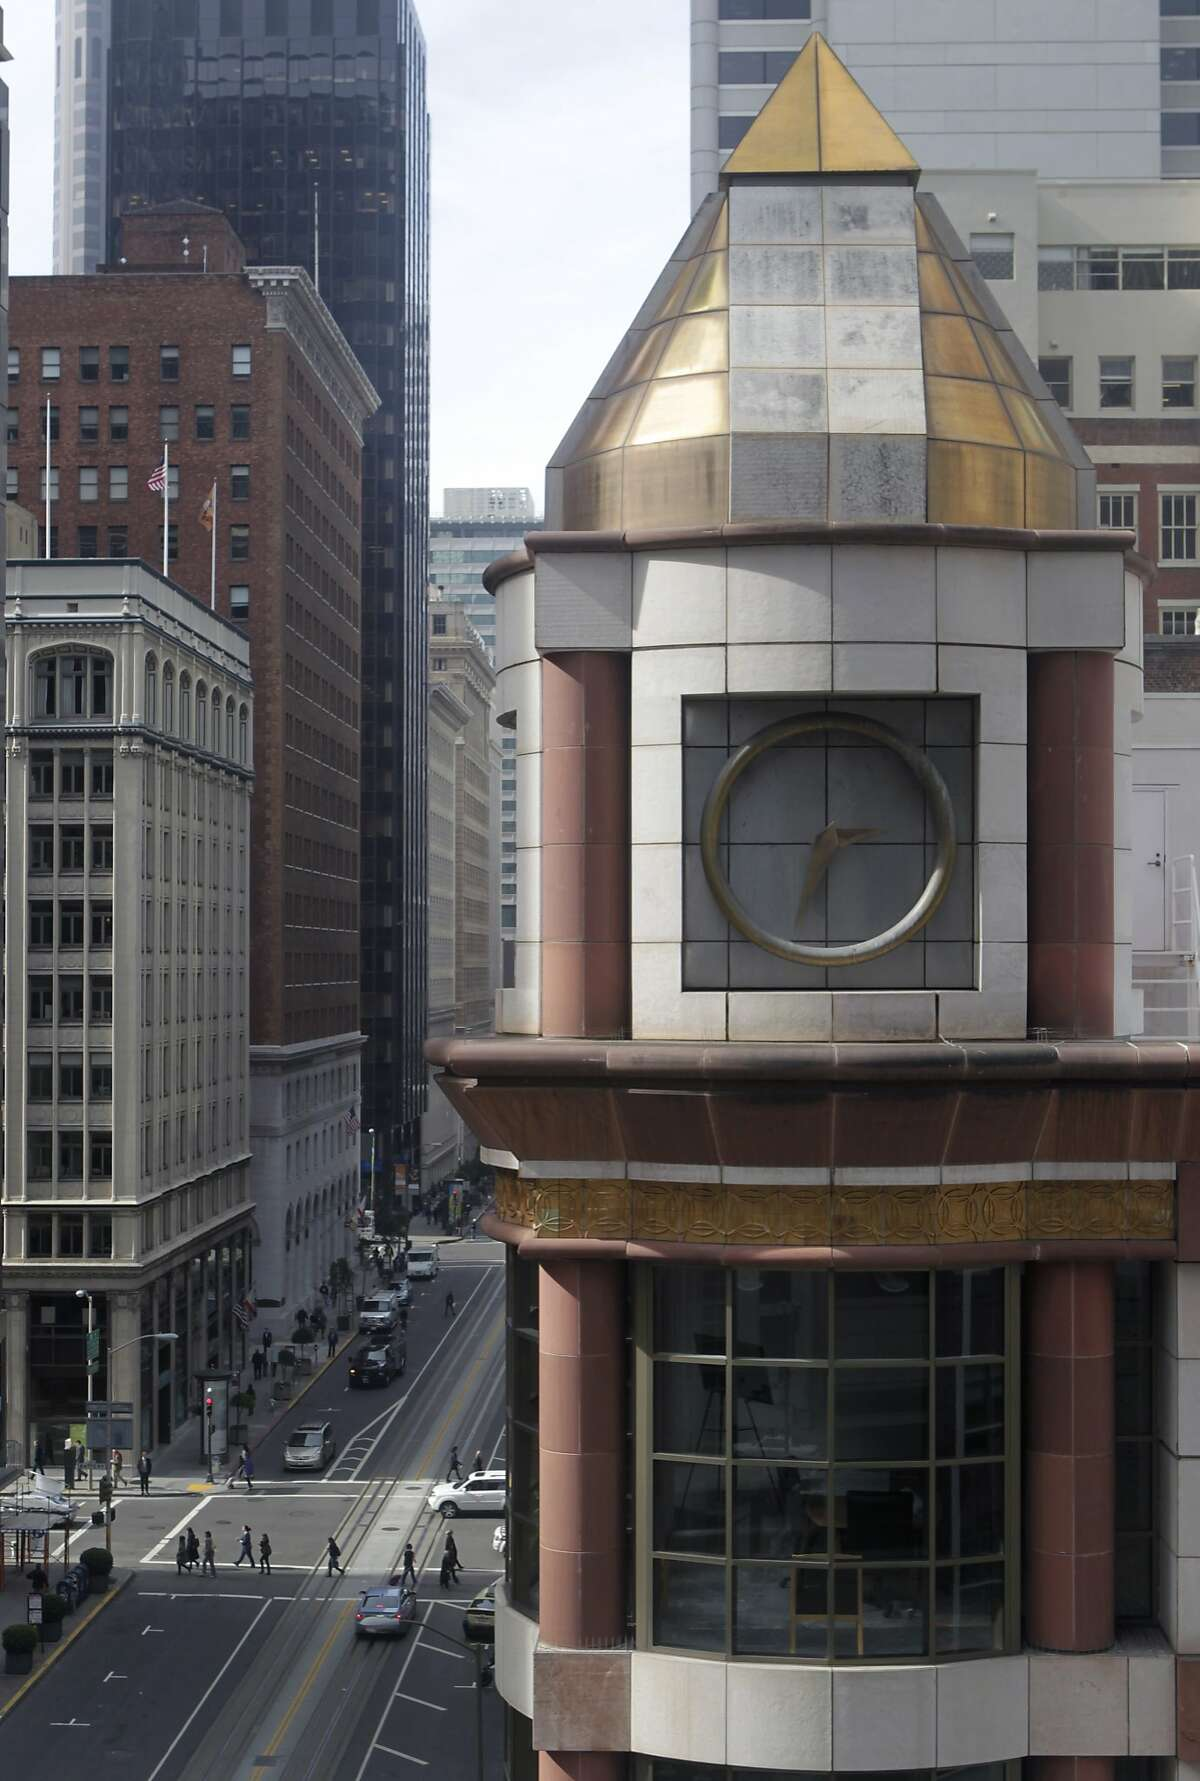 A clock tower is seen on the 200 California Street office building in San Francisco, Calif. on Wednesday, Feb. 12, 2014. Building owners have received approval to lop off the clock tower and remove gold-leaf trim from the top of the structure.